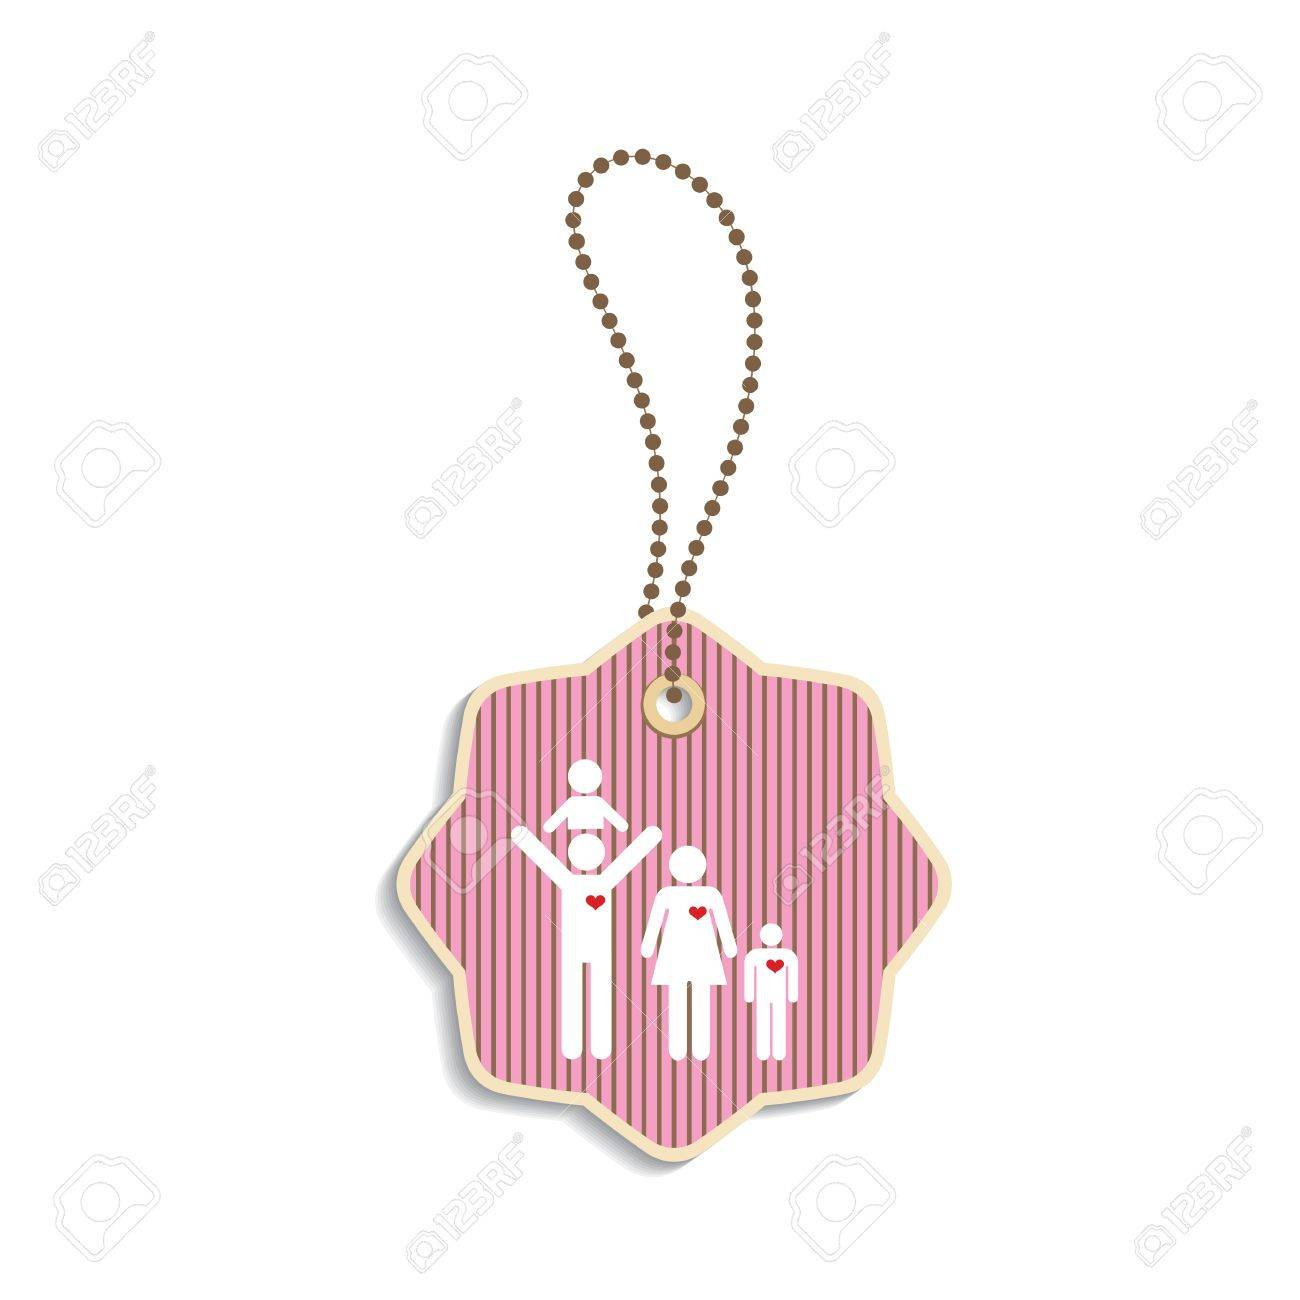 Symbol my family are happiness royalty free cliparts vectors and symbol my family are happiness stock vector 19197713 buycottarizona Image collections